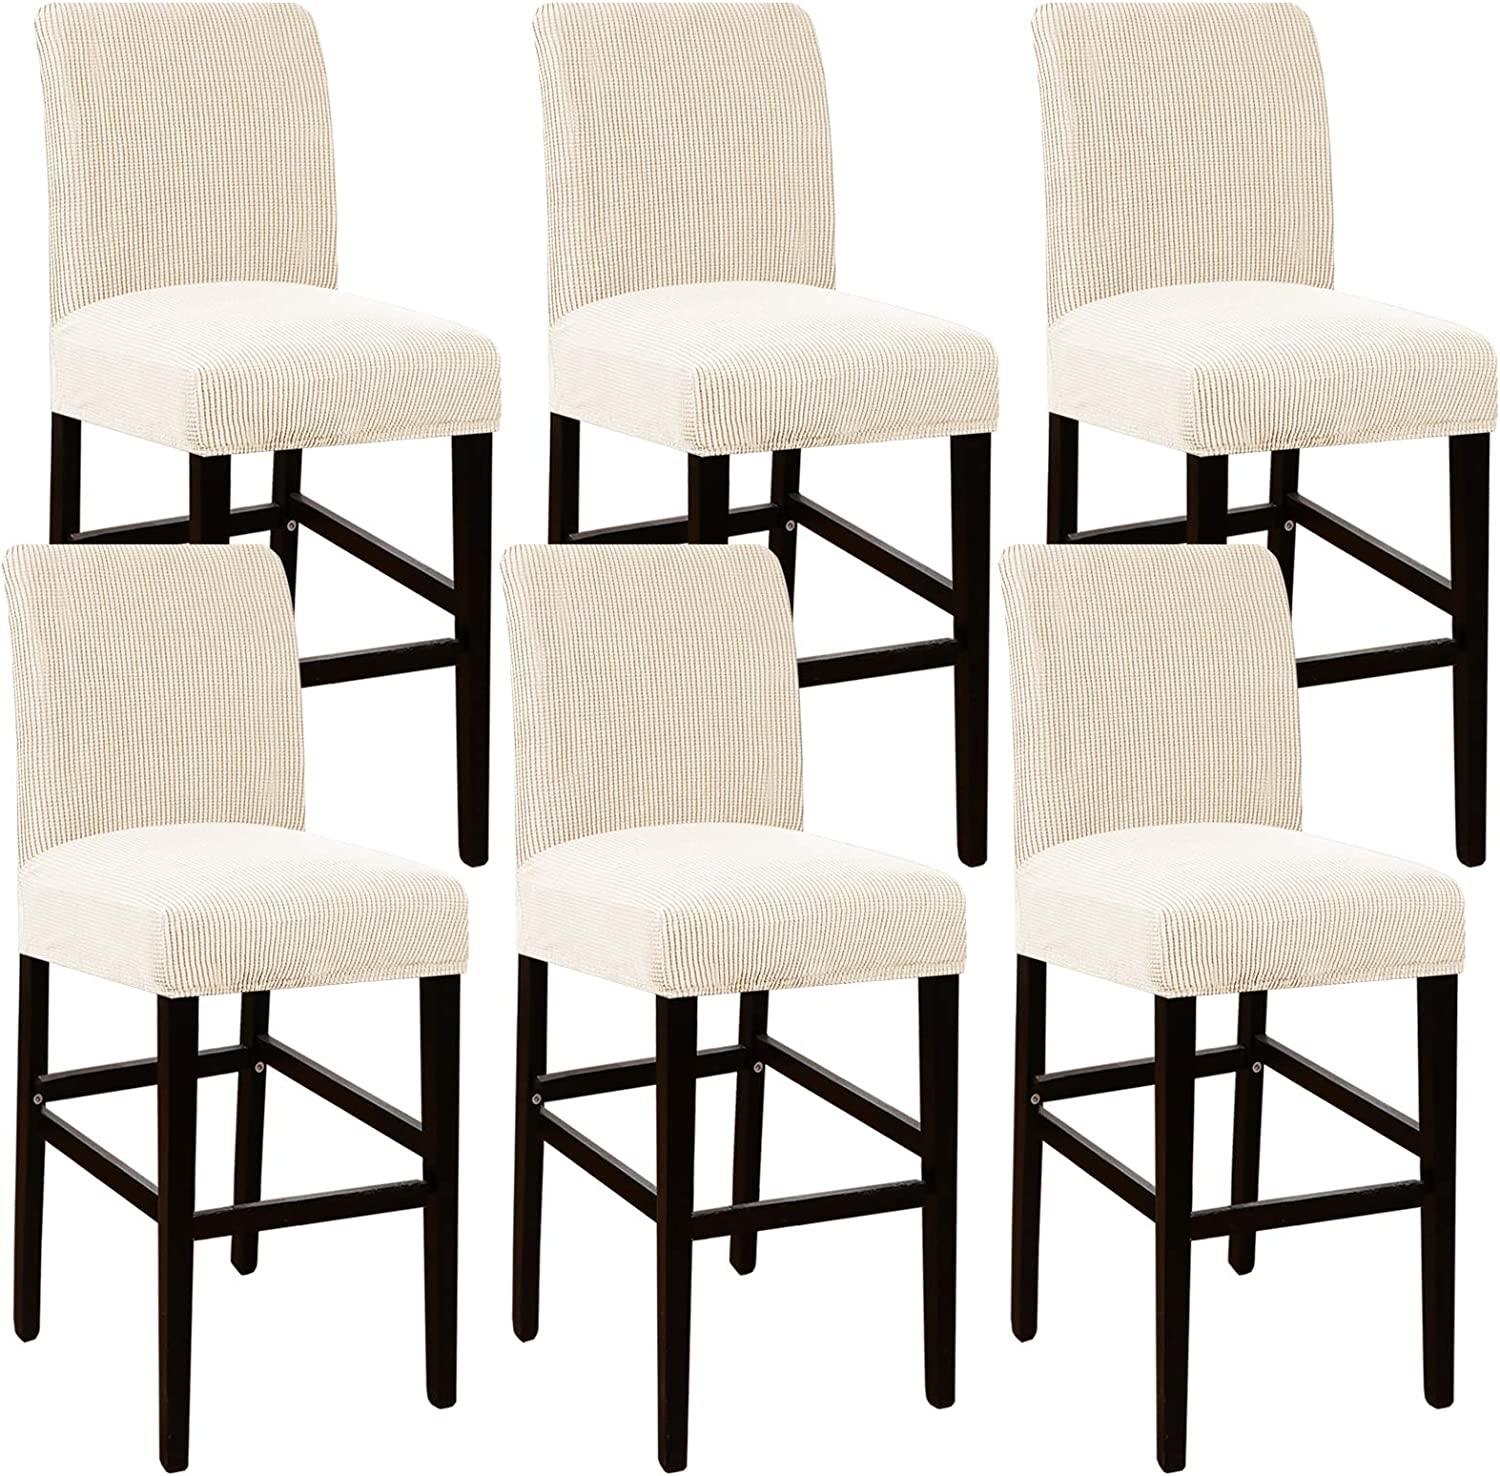 High Stretch Bar Stool Raleigh Mall Cover Safety and trust Counter f Pub Chair Slipcover